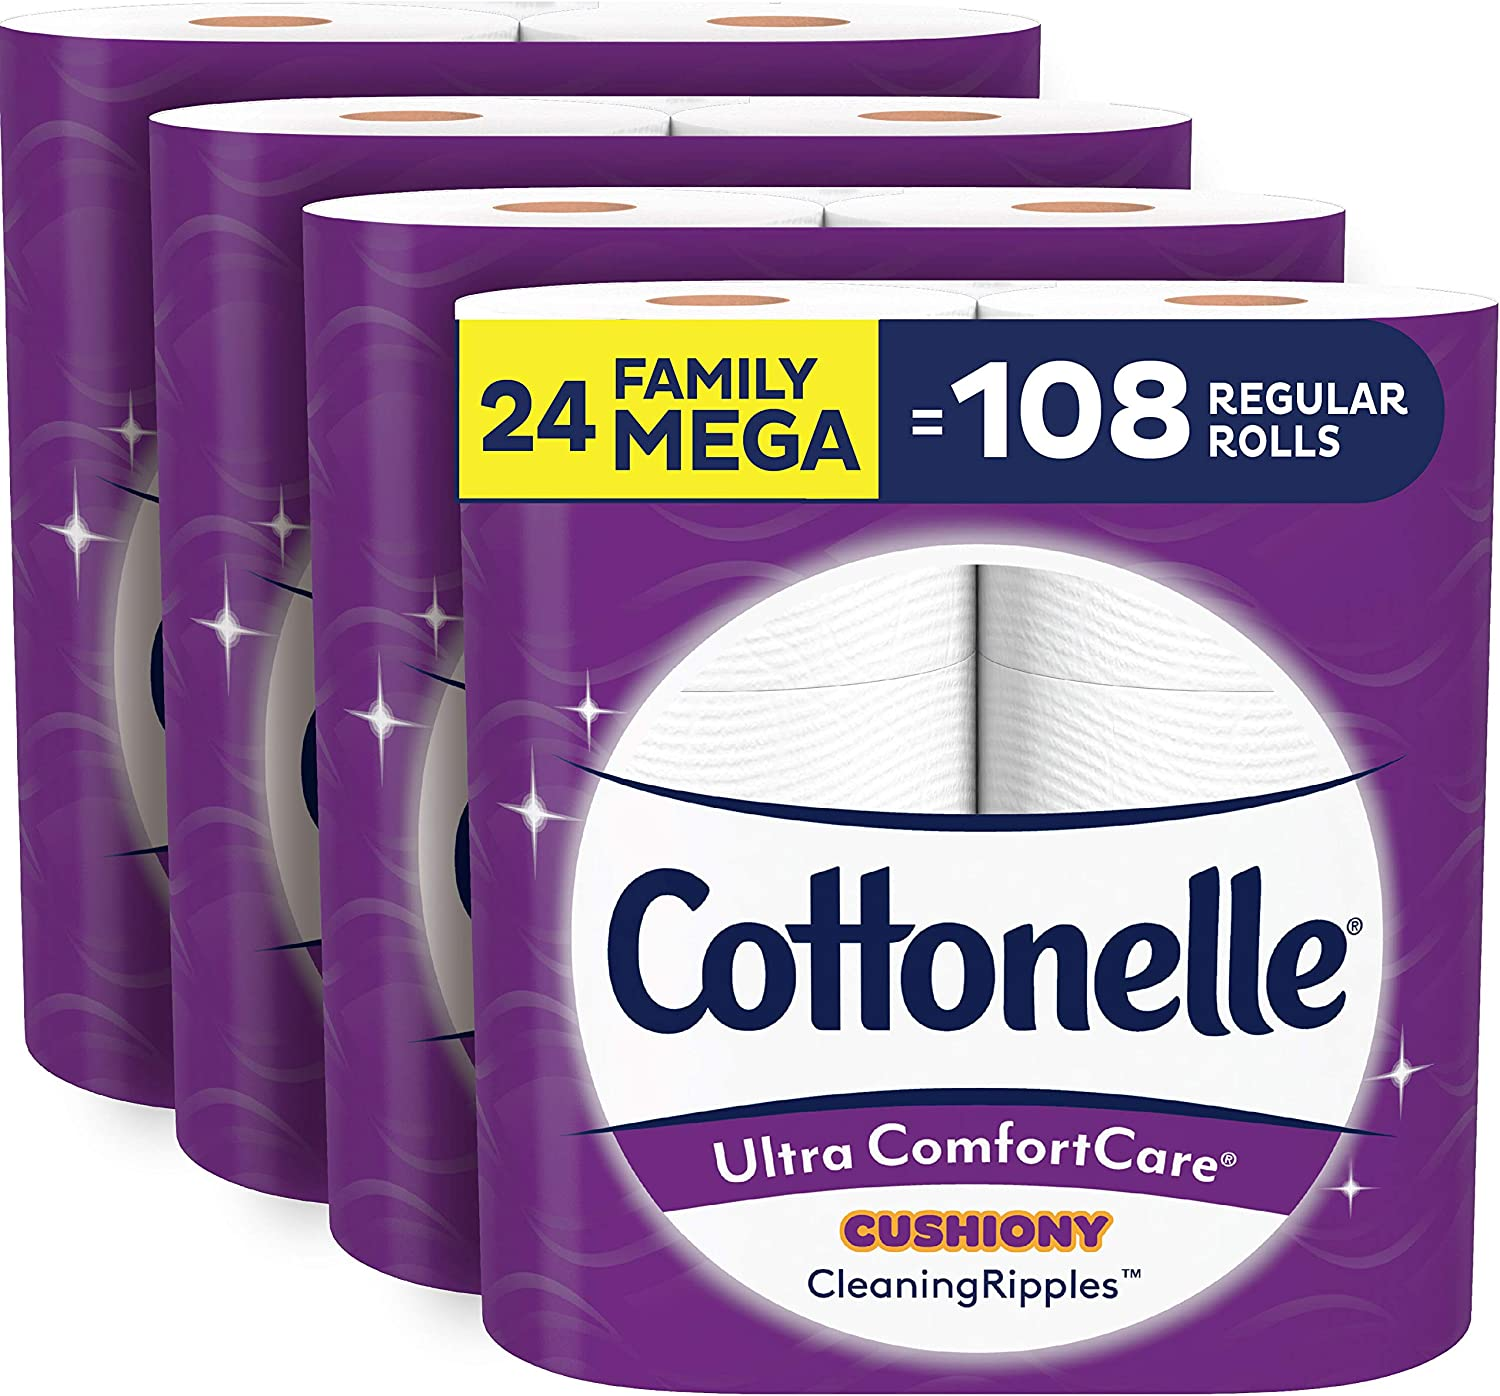 Cottonelle Ultra ComfortCare Soft Toilet Paper with Cushiony CleaningRipples, 24 Family Mega Rolls: Health & Personal Care